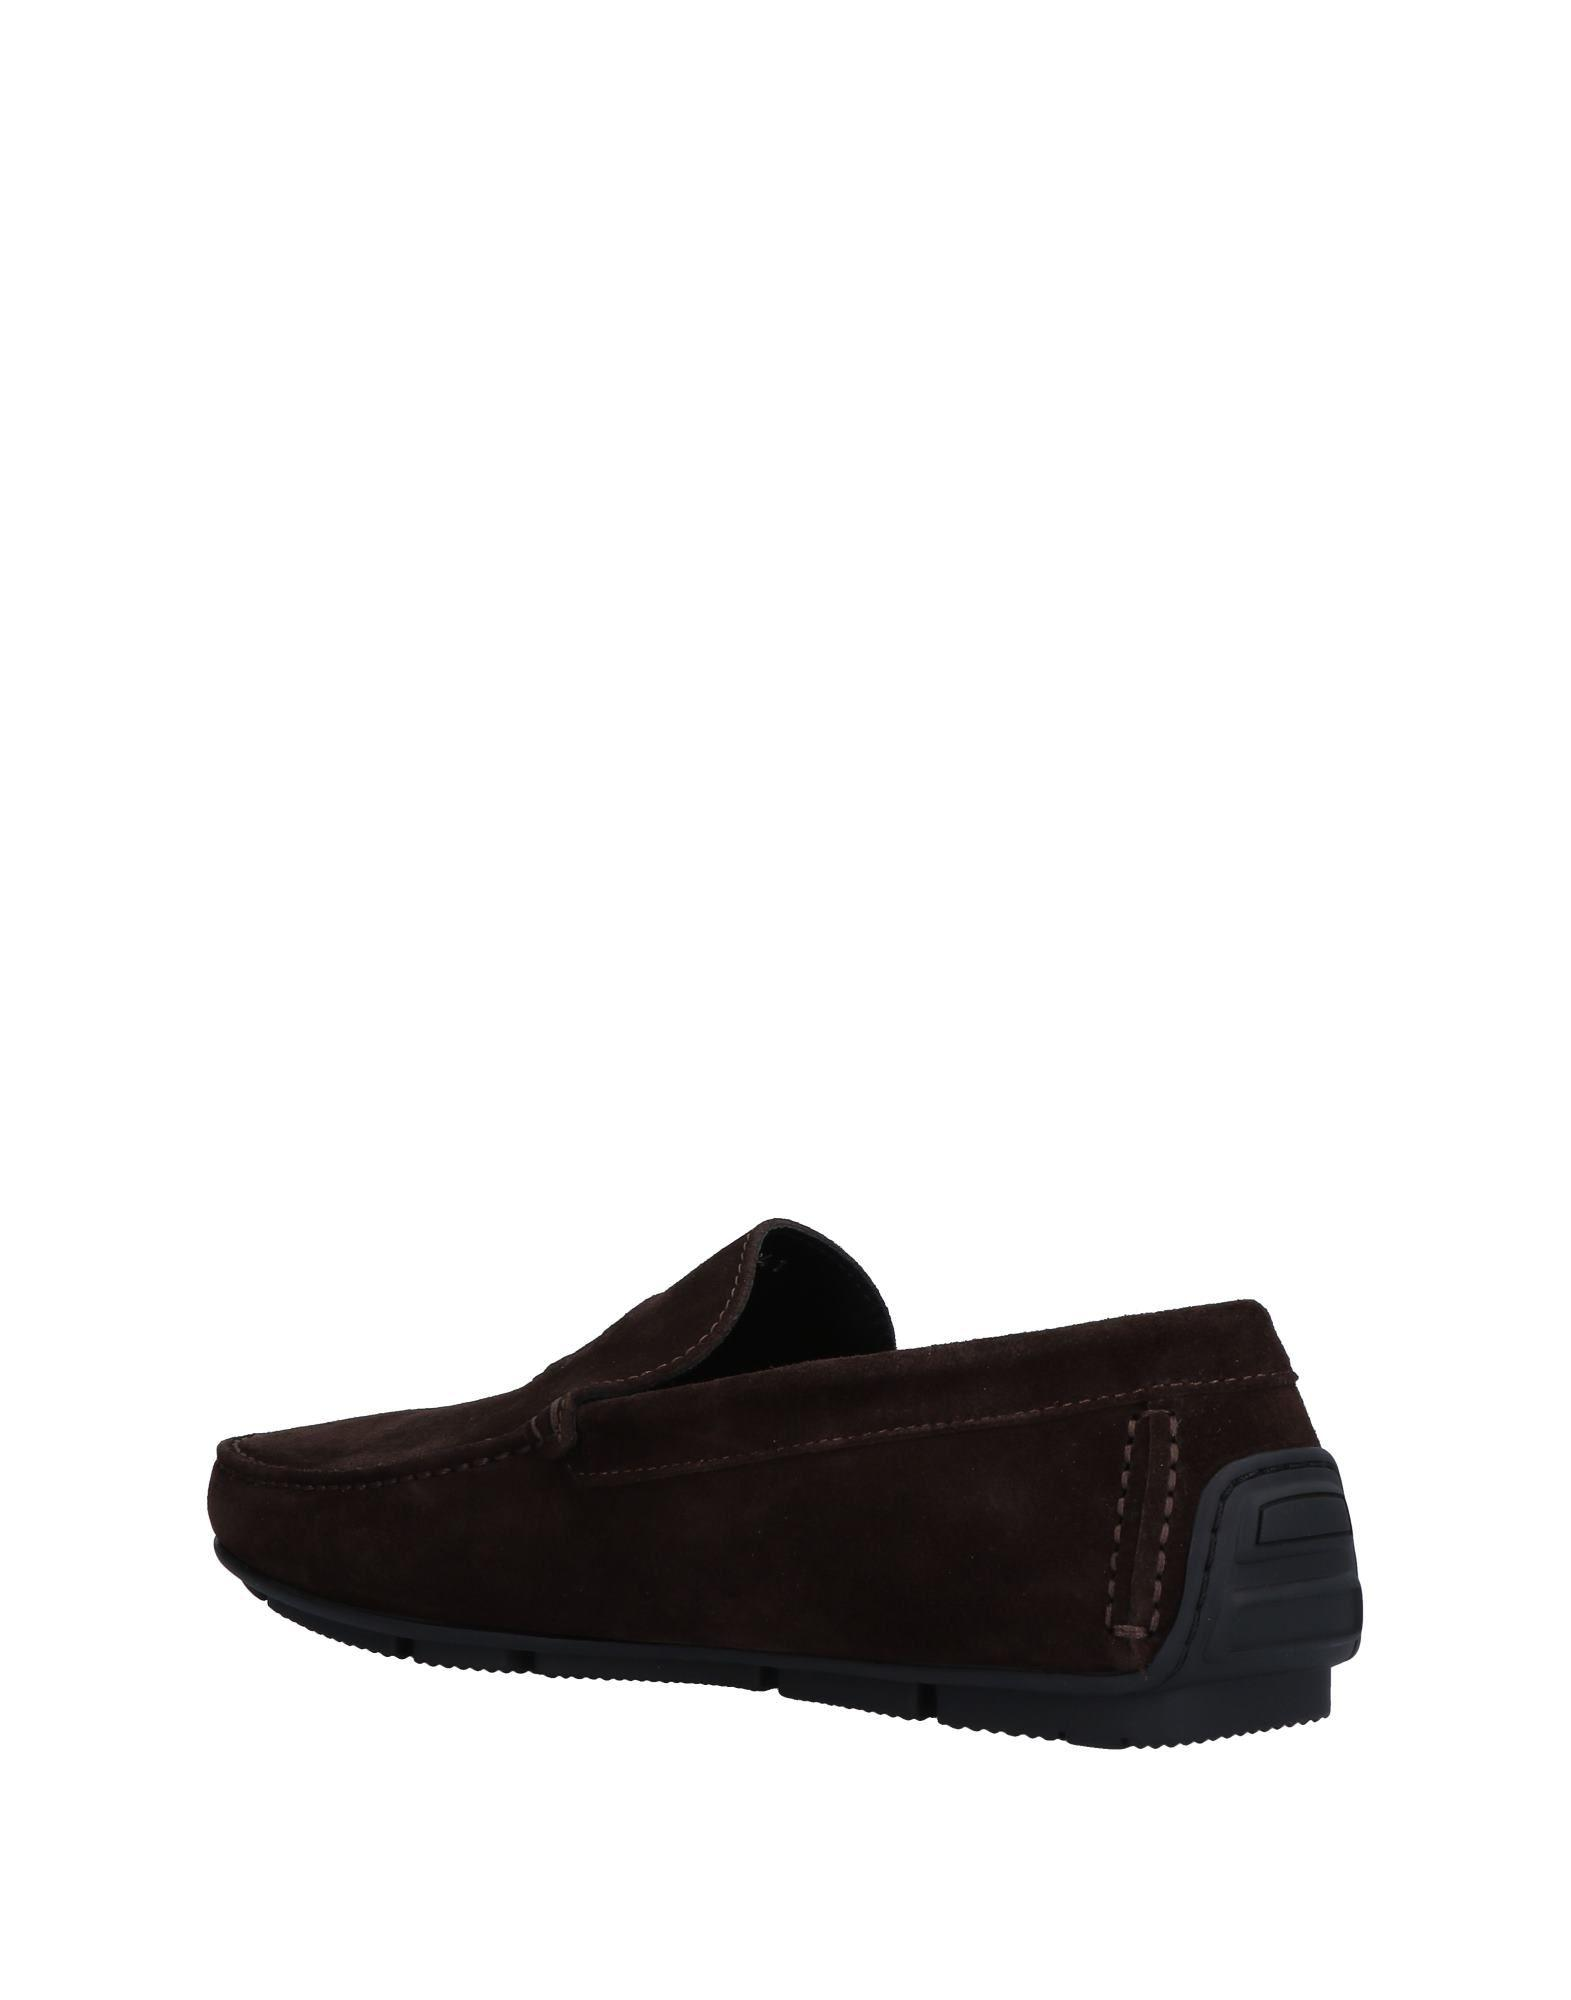 a5aca8f7cdd Lyst - Roberto Cavalli Loafer in Brown for Men